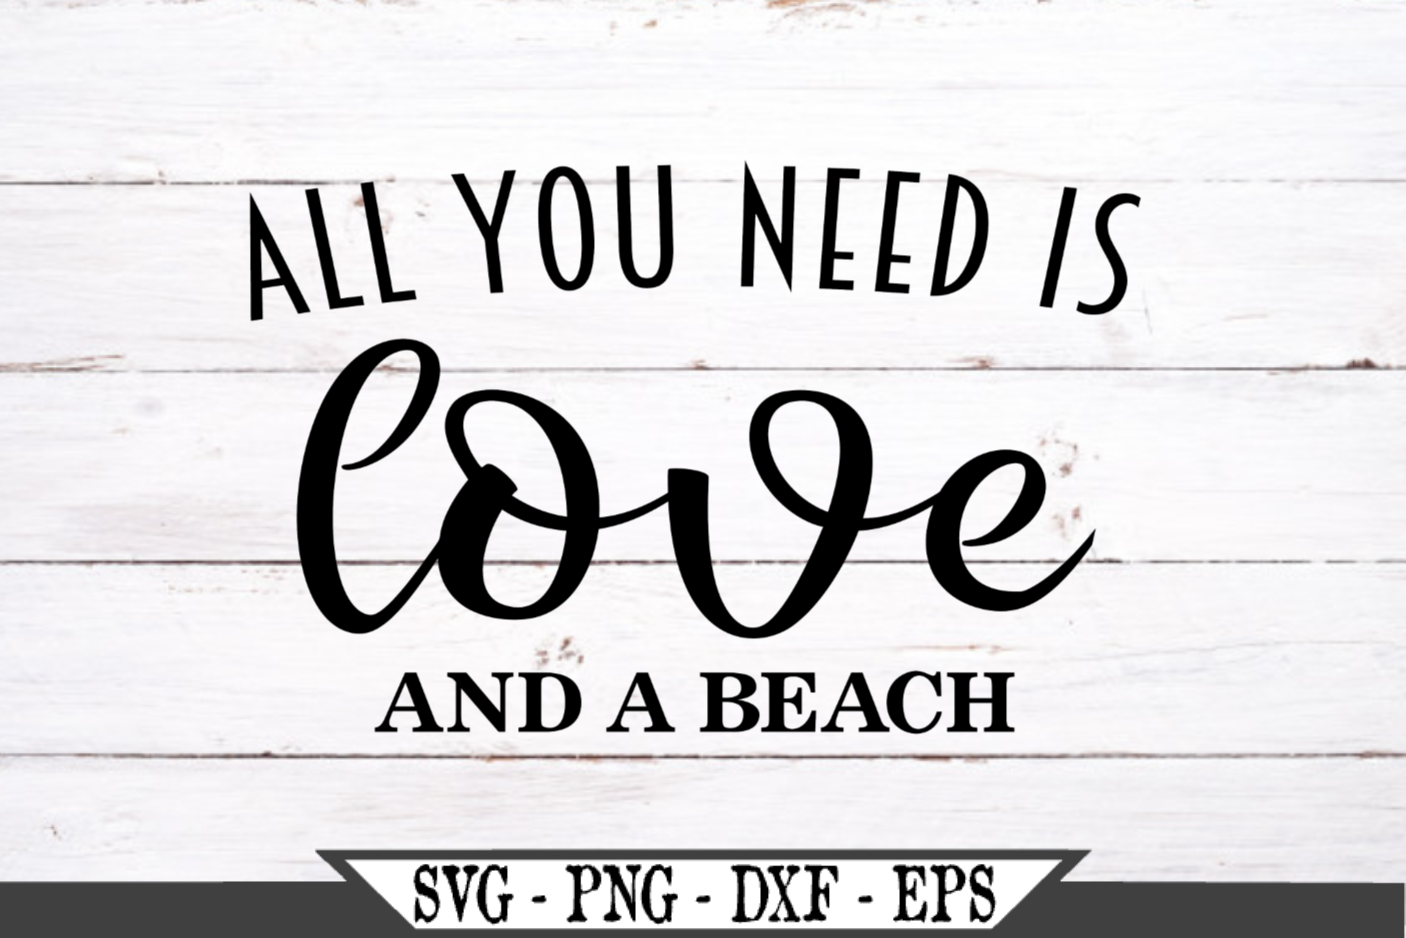 All You Need Is Love And A Beach SVG example image 2